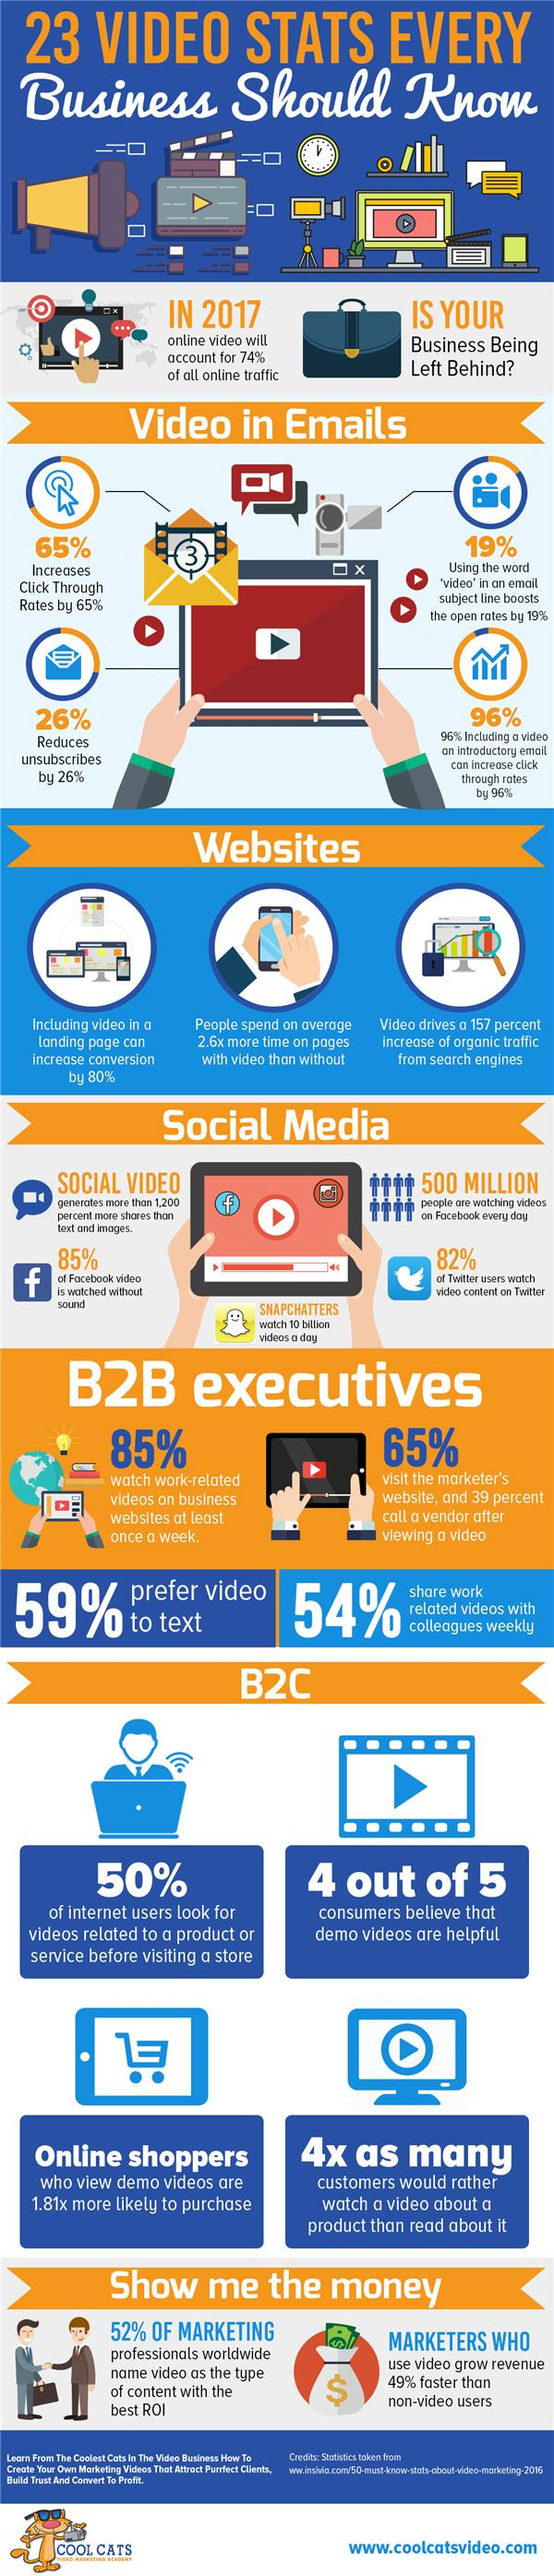 23 Video Stats Every Business Should Know